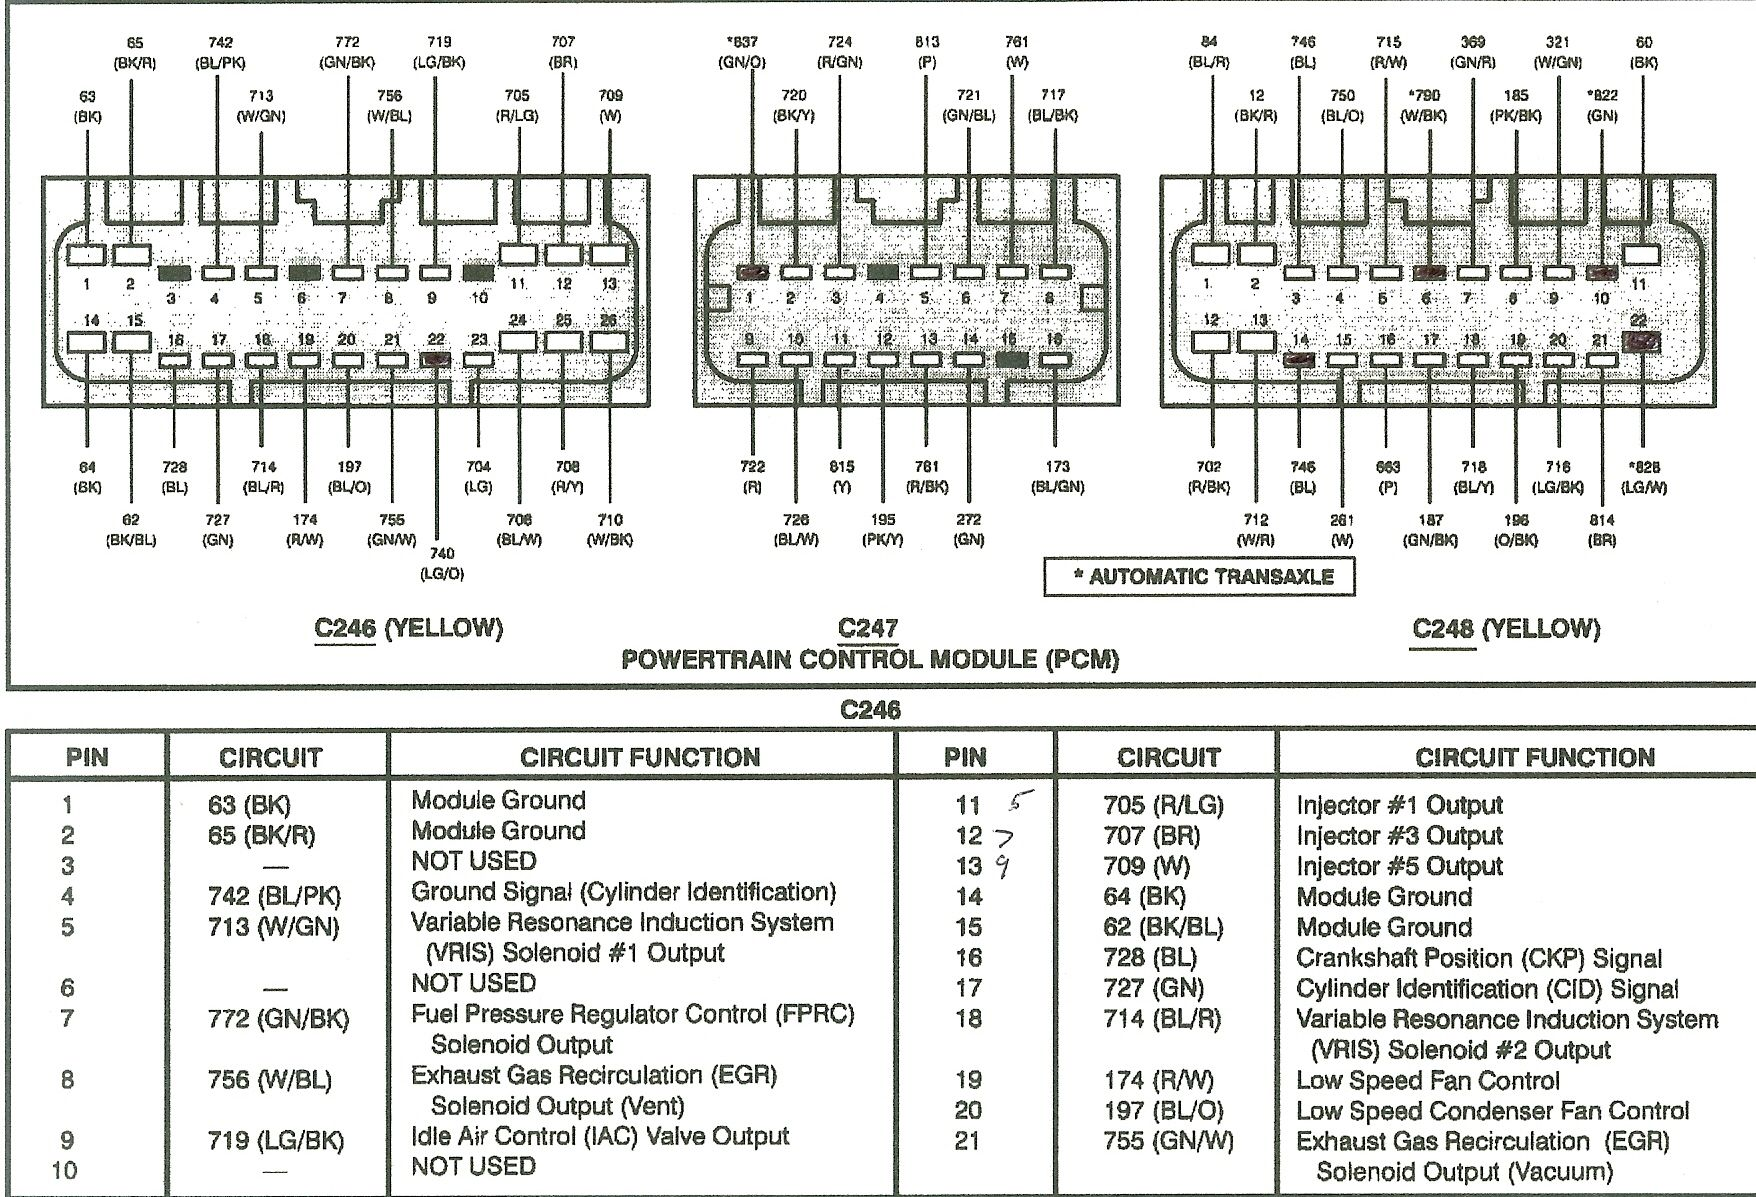 Pinouts Wiring Diagram Pcm To Ecm 4 7 Dodge Ram